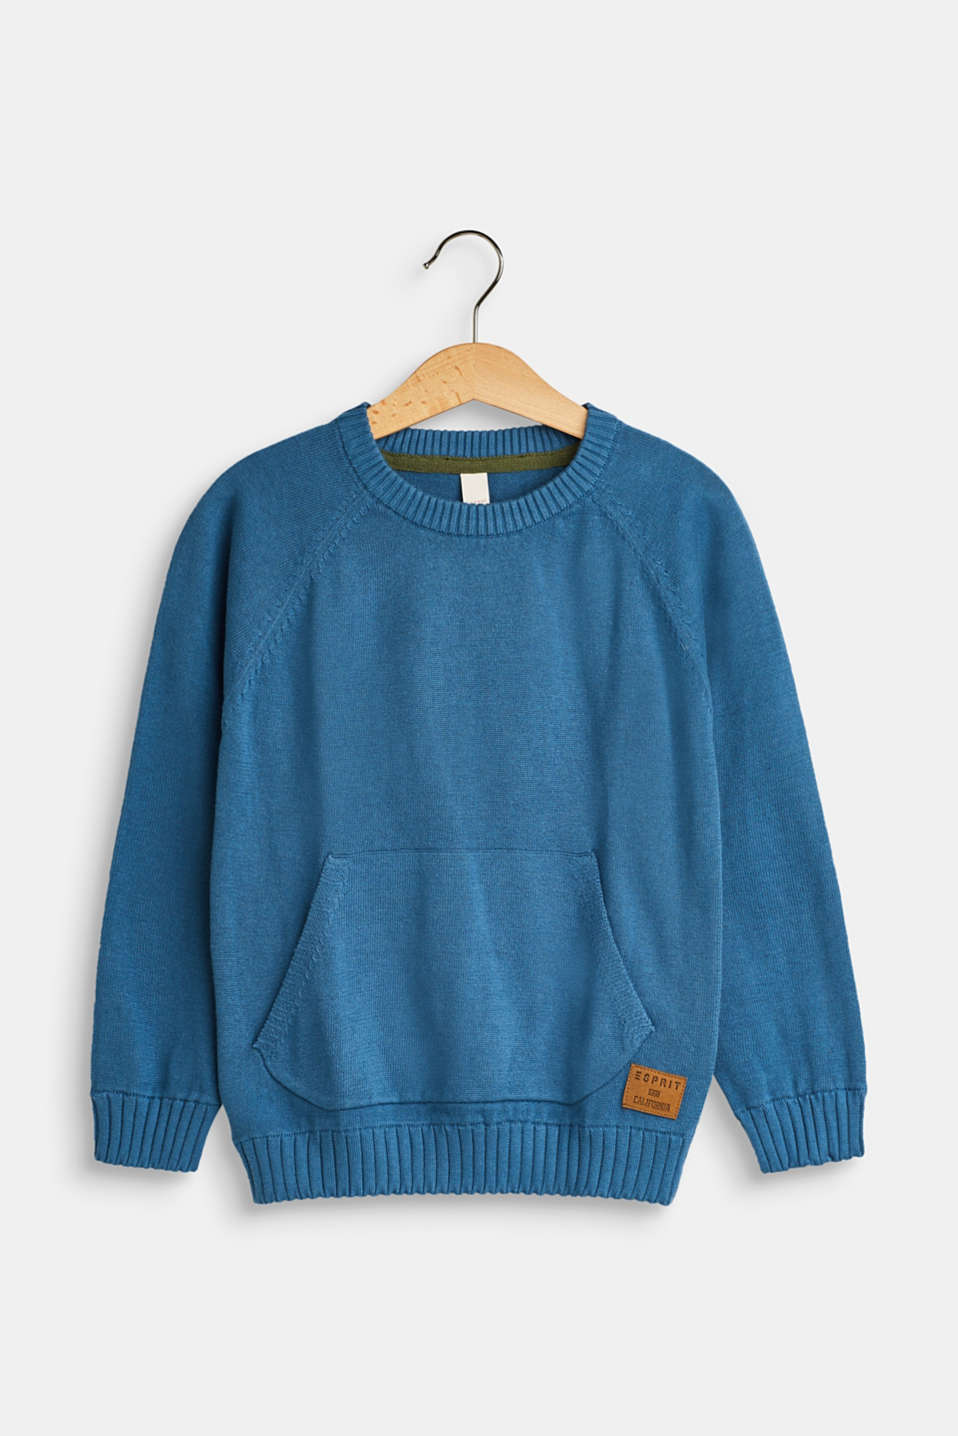 Esprit - Knitted jumper with a kangaroo pocket, 100% cotton